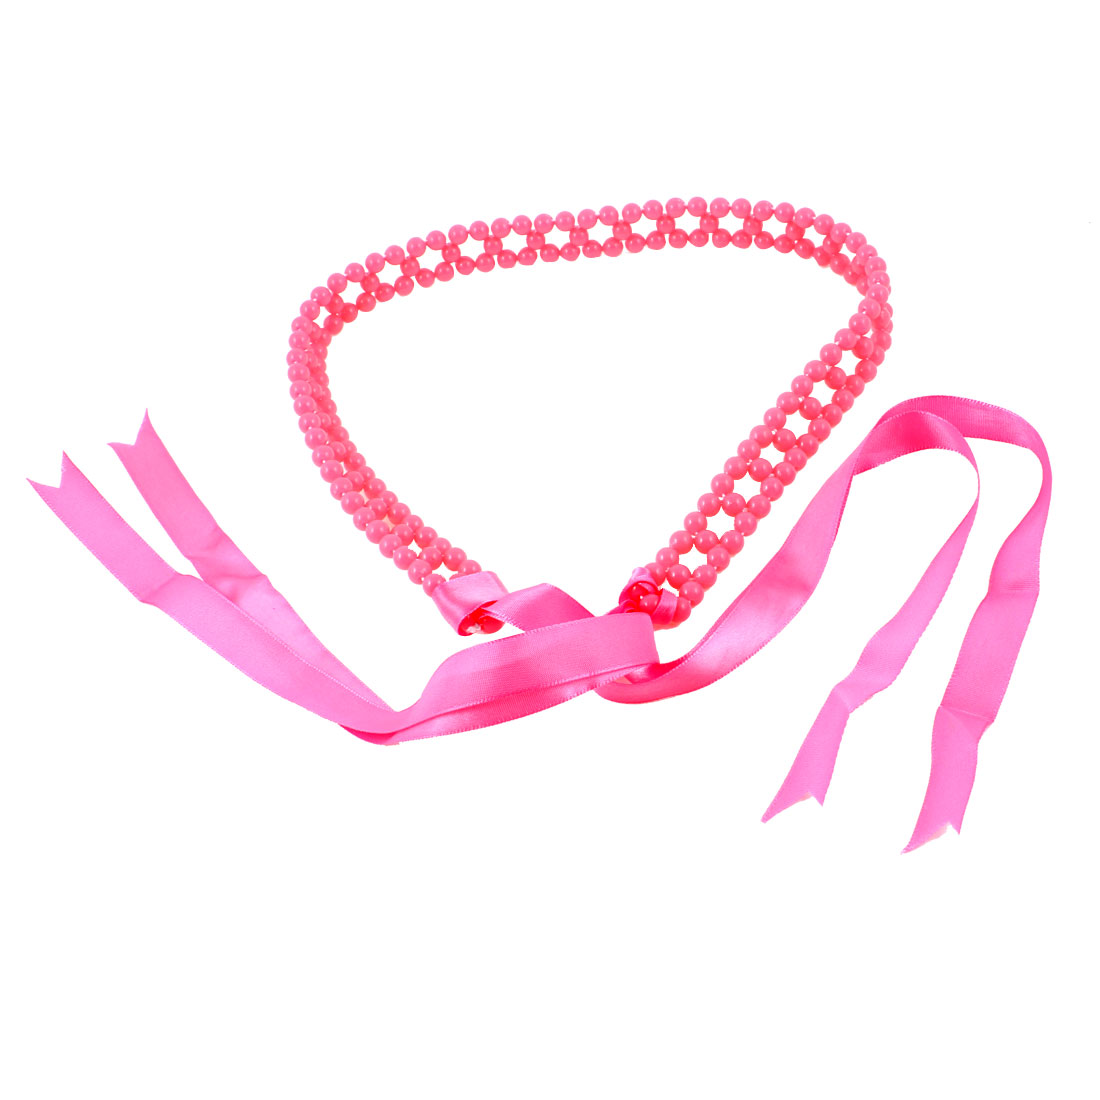 2cm Wide Faux Pearl Chain Self Tie Waist Belt Fuchsia